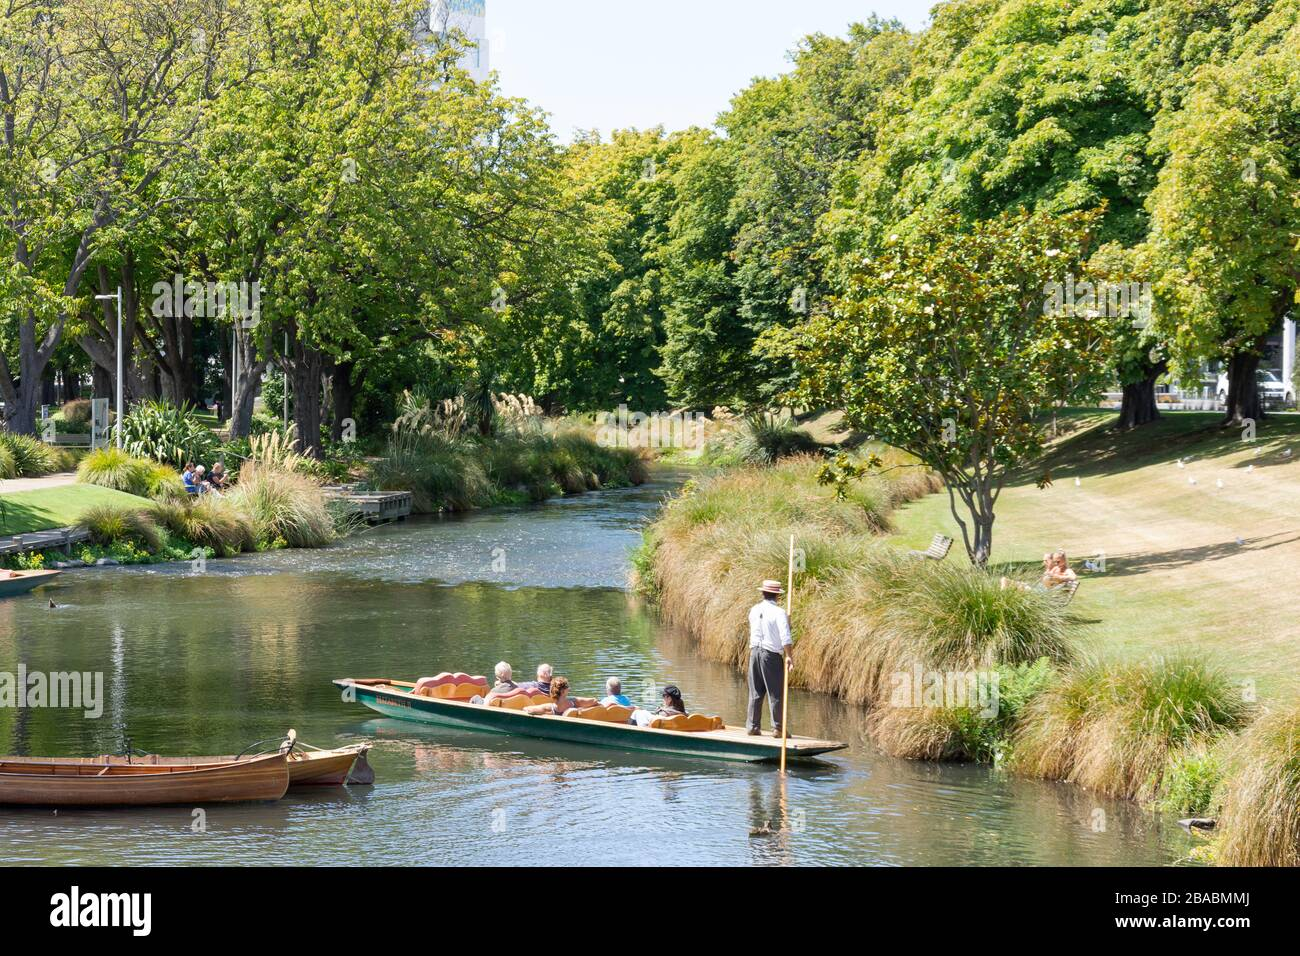 Punting on River Avon at Antigua Boat Sheds, Cambridge Terrace, Christchurch, Canterbury Region, New Zealand Stock Photo